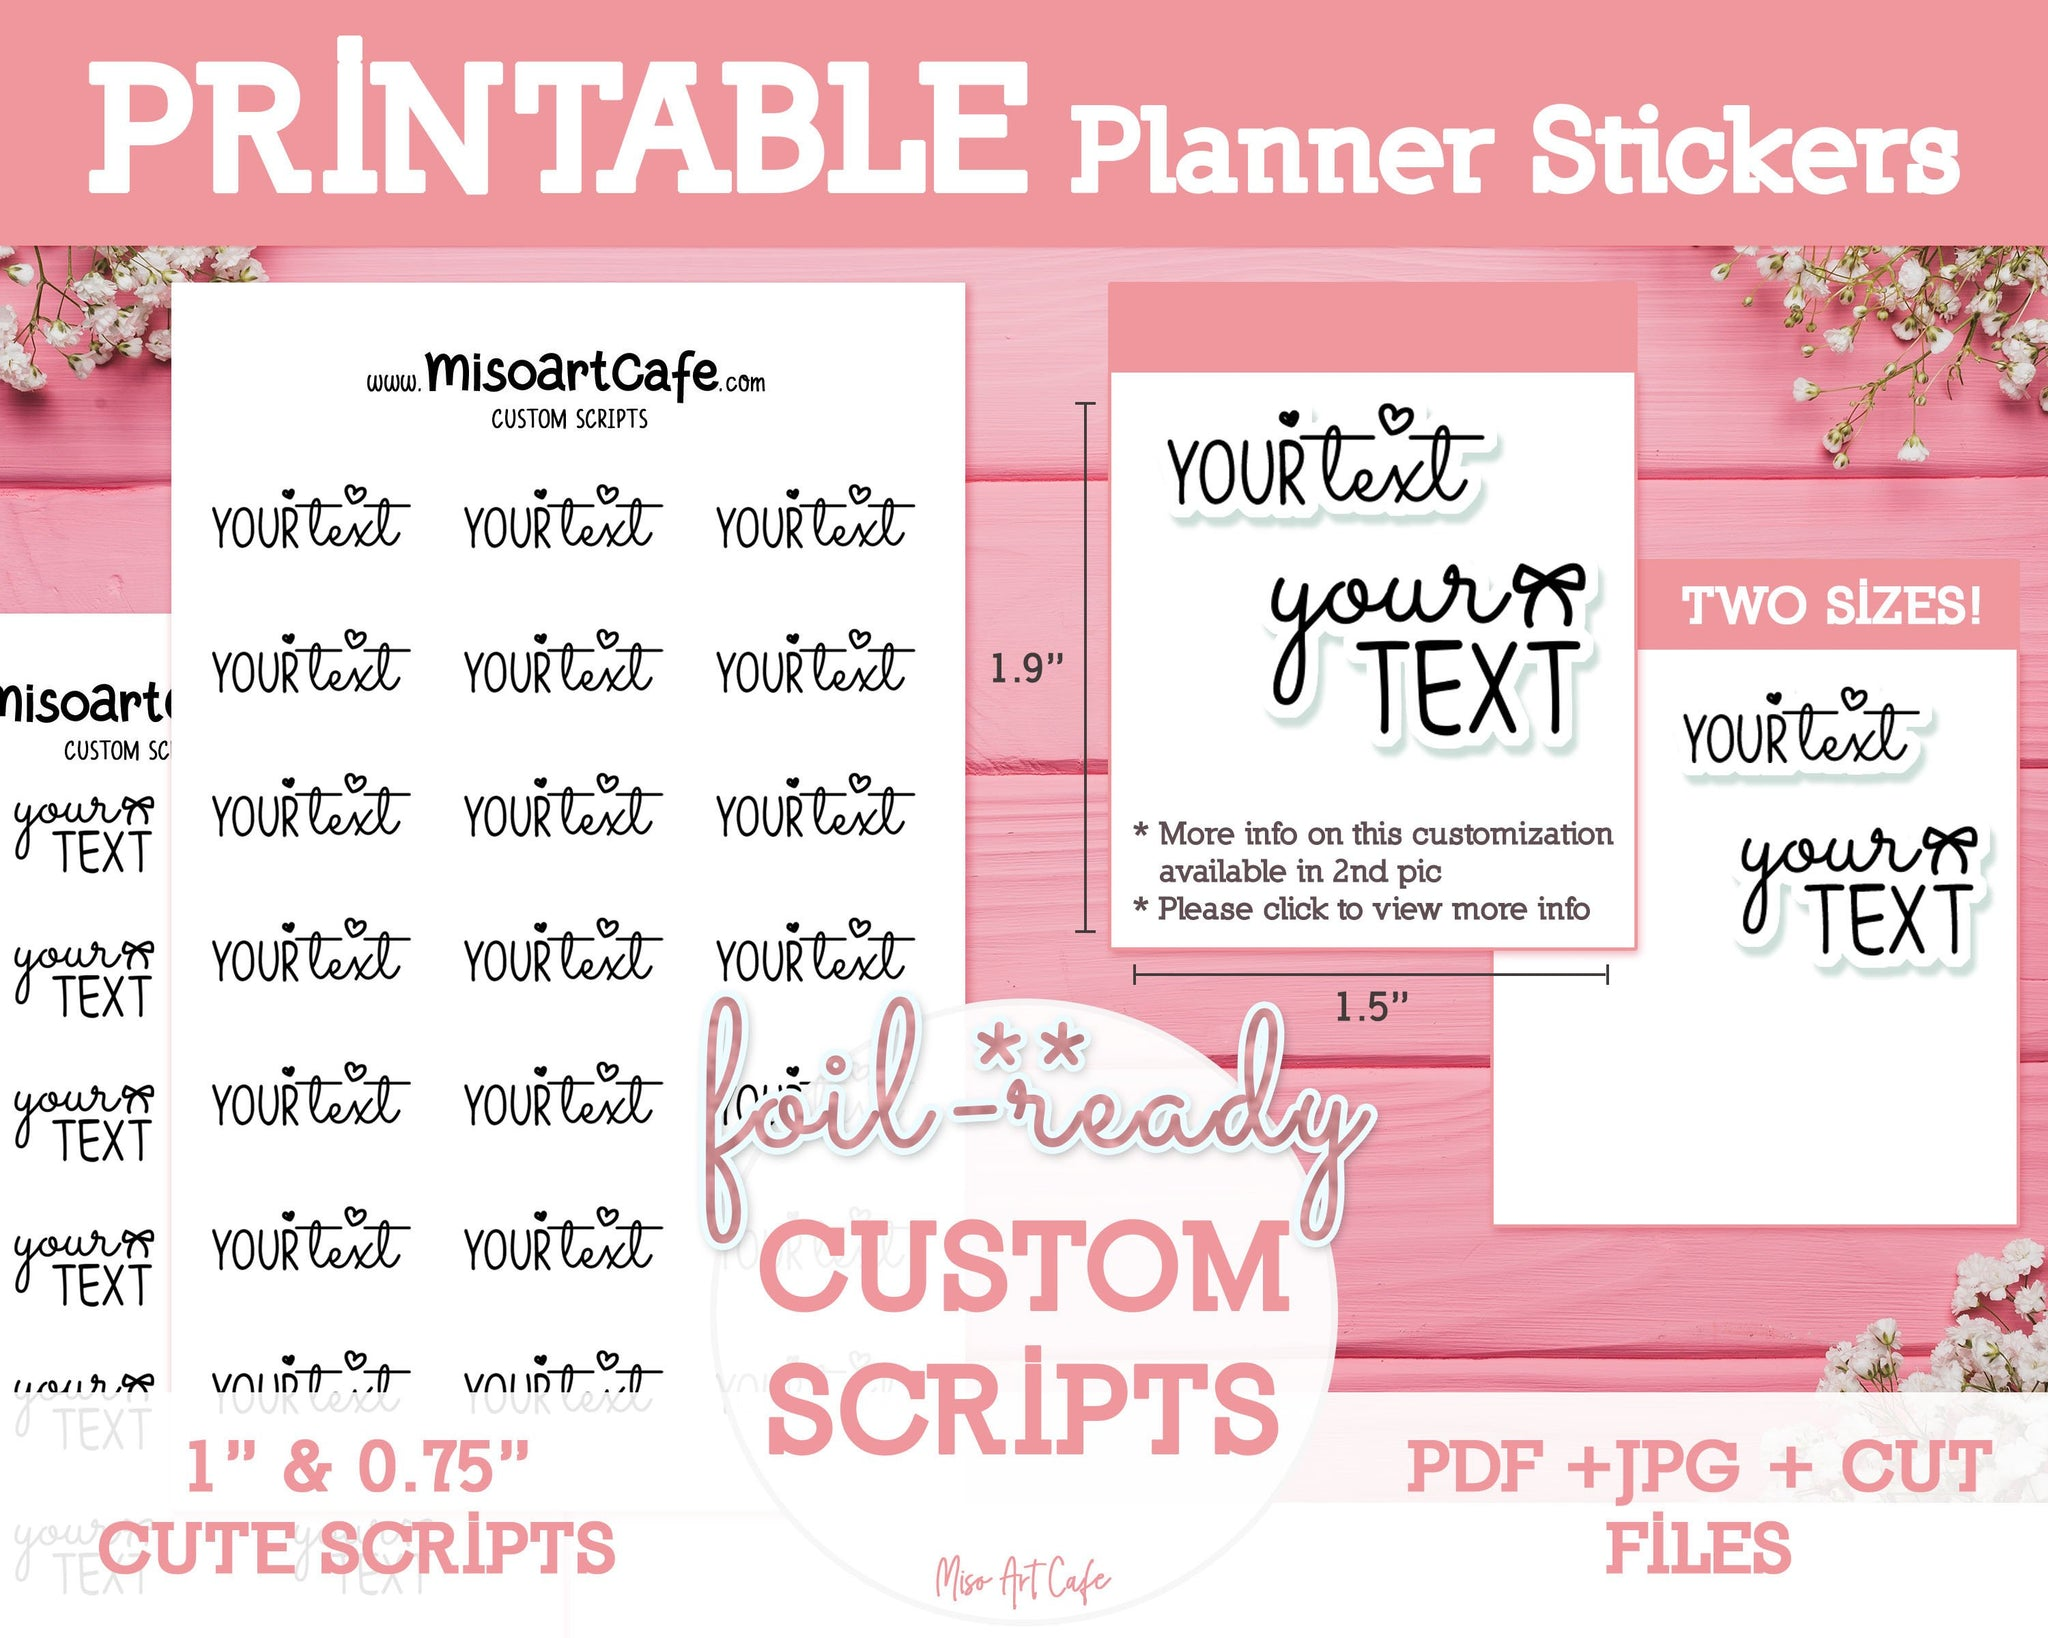 CUSTOM Printable Foil-Ready Scripts - Typography Planner Stickers - Miso Art Cafe